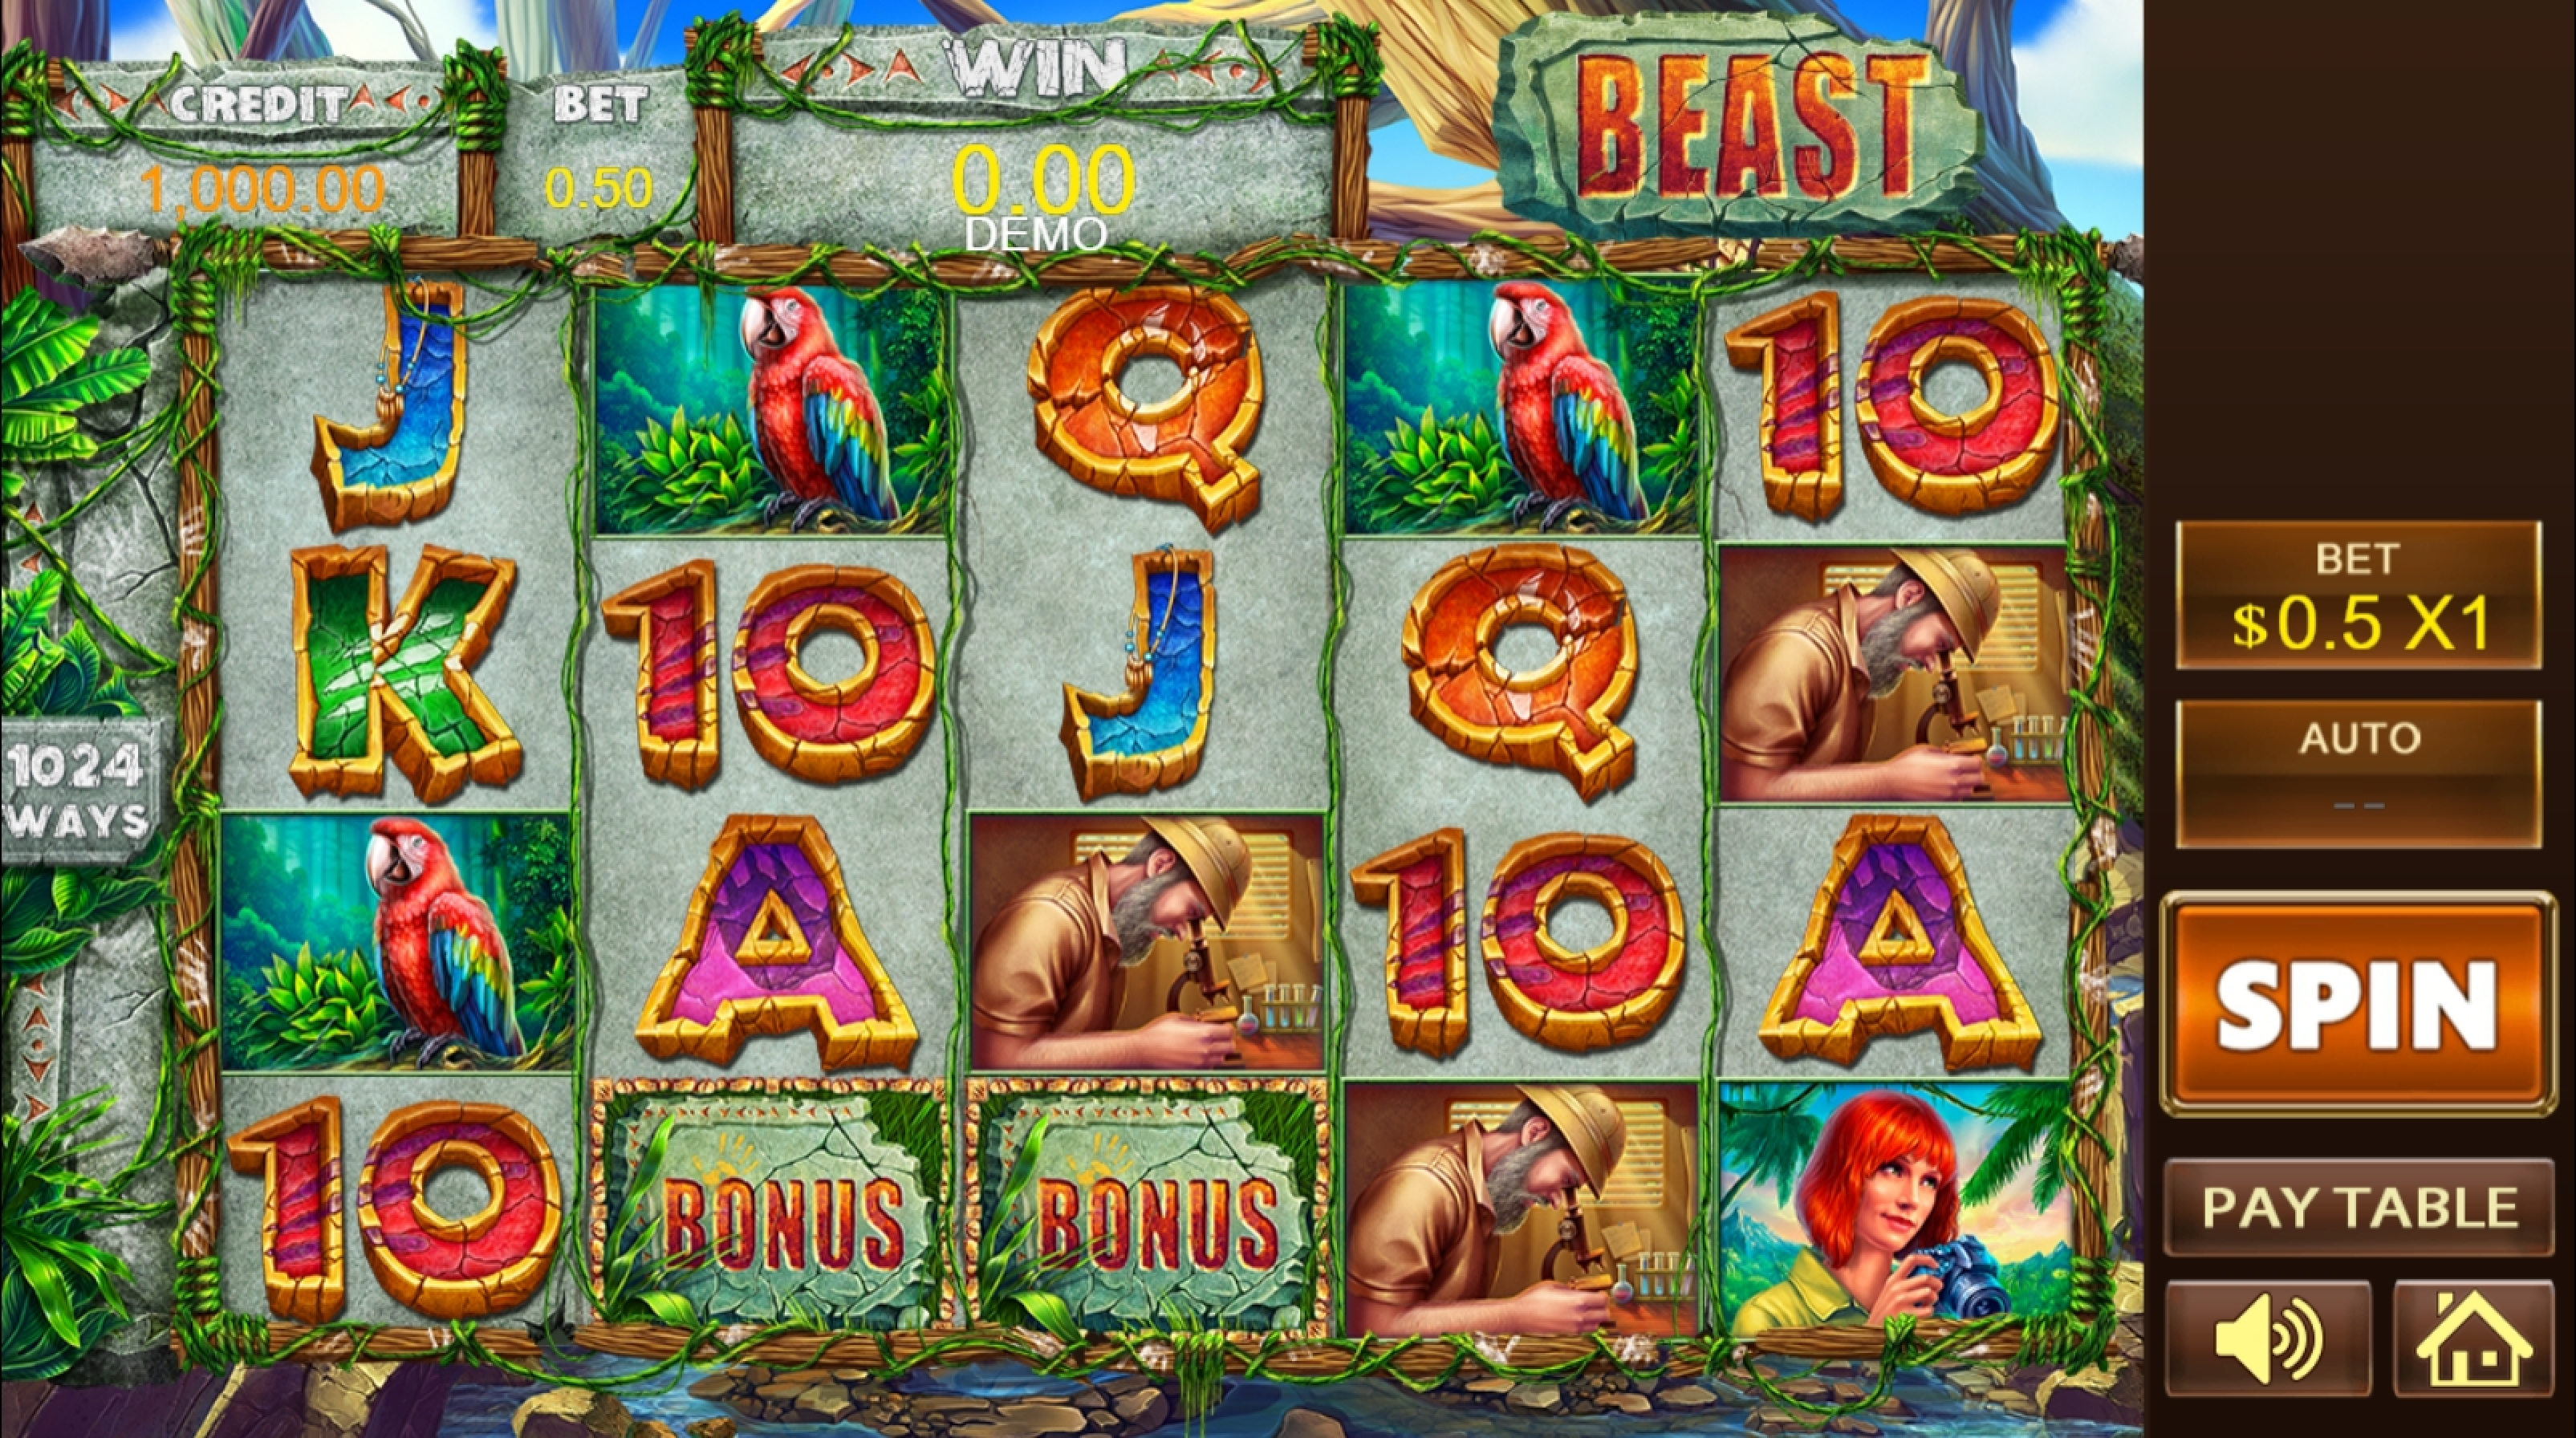 Reels in Beast (PlayStar) Slot Game by PlayStar